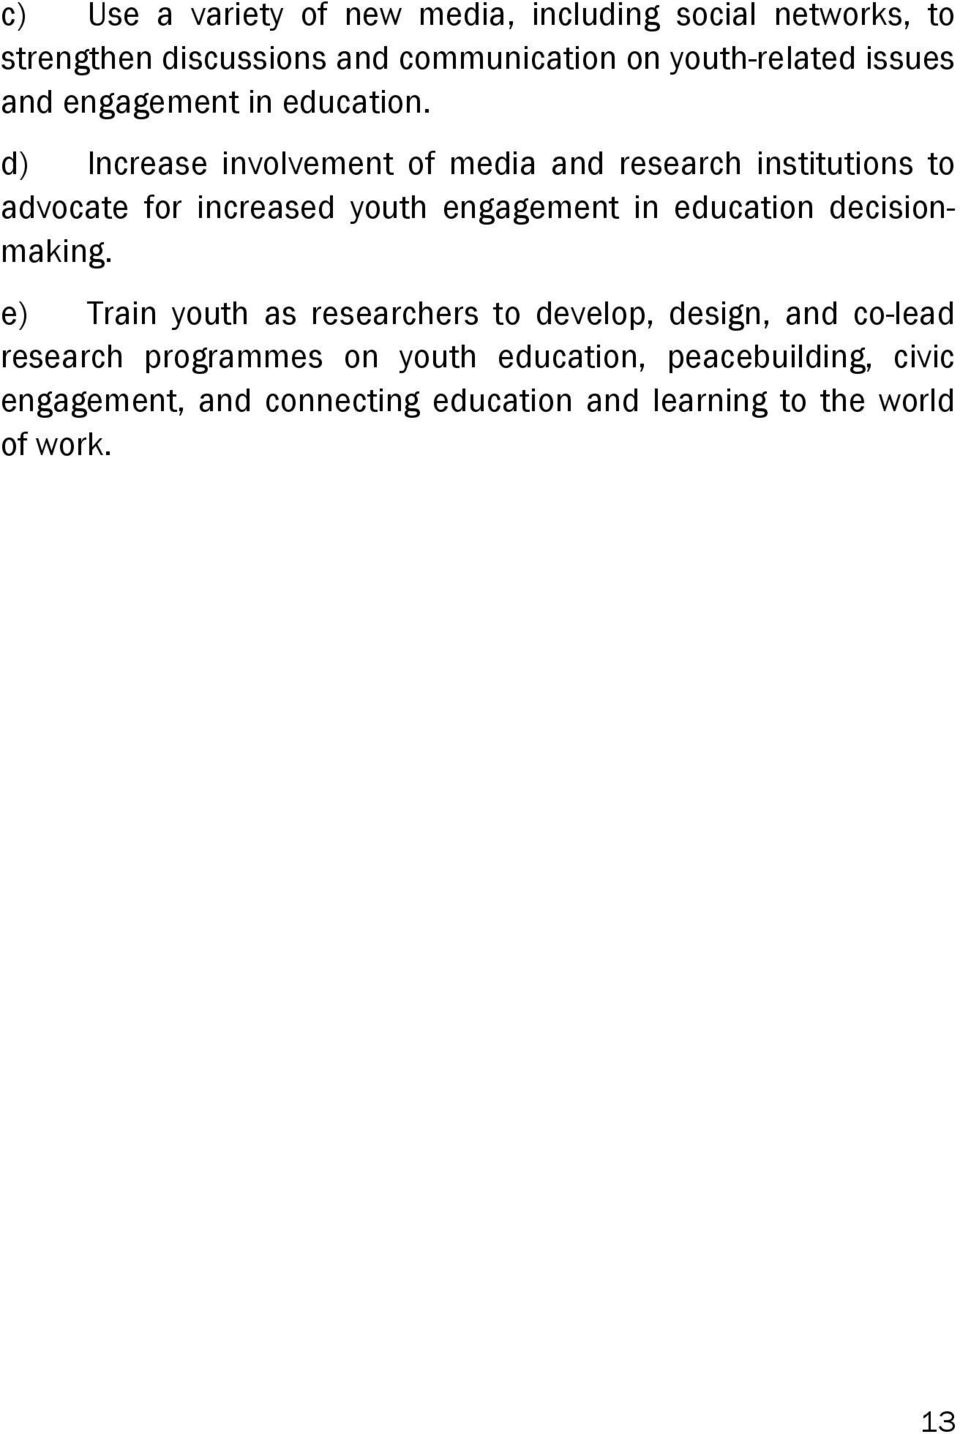 d) Increase involvement of media and research institutions to advocate for increased youth engagement in education